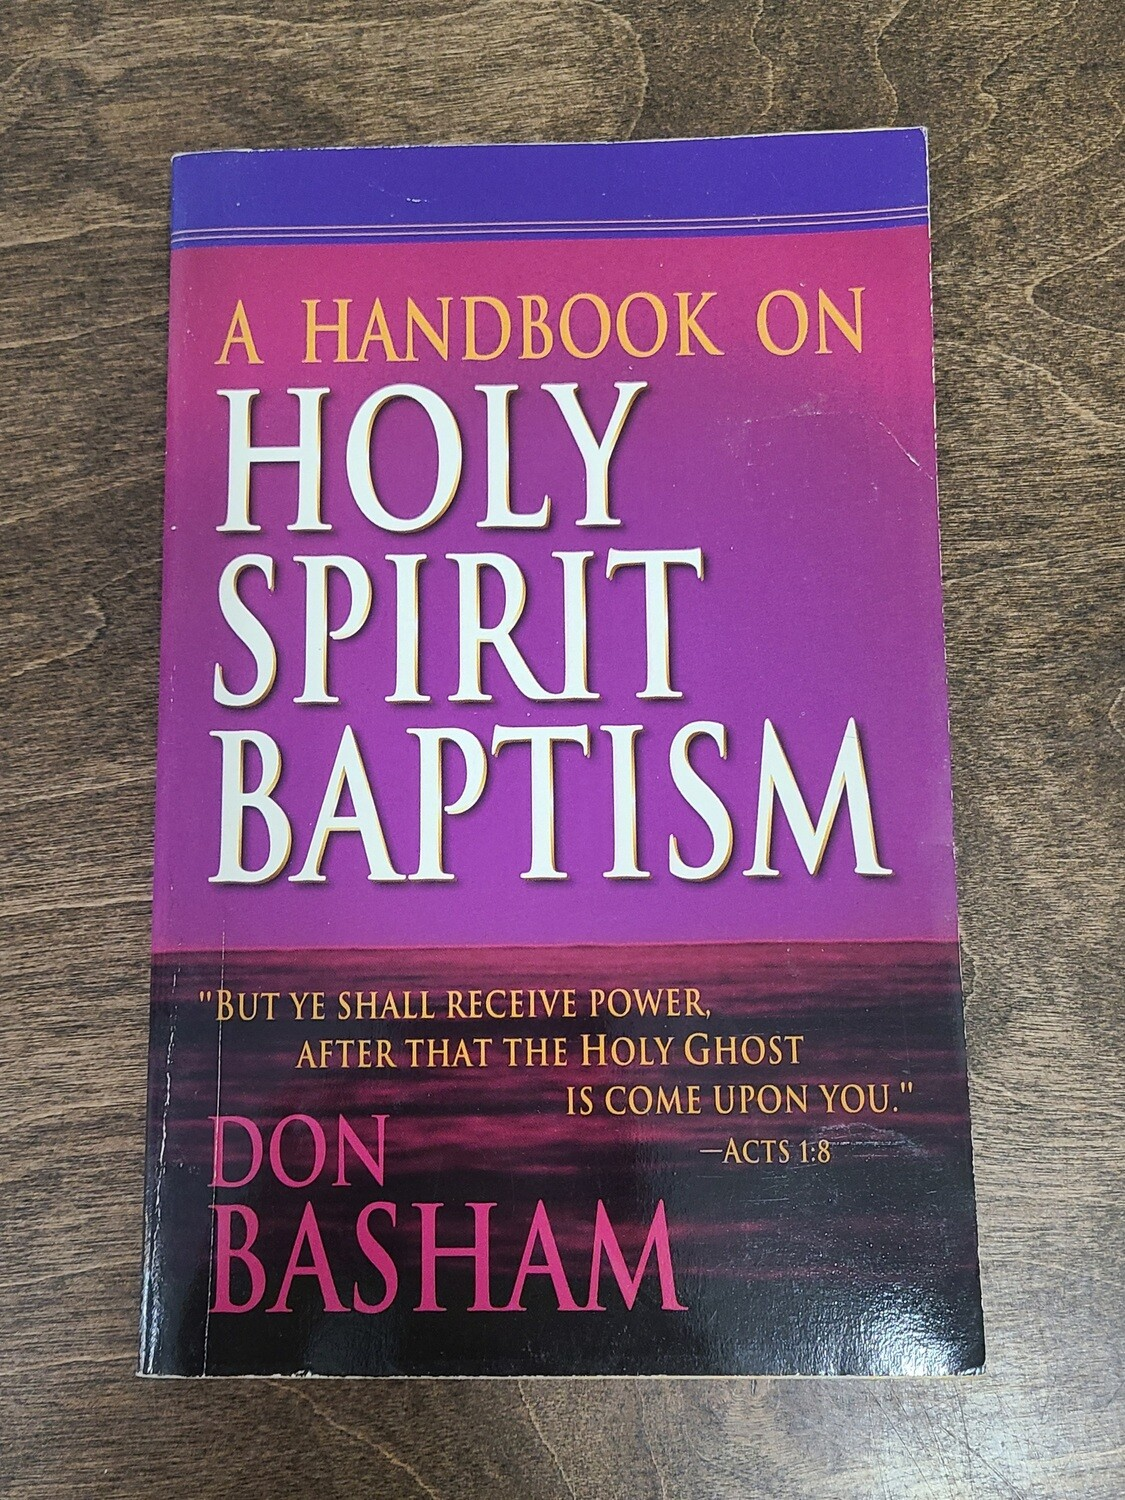 A Handbook on Holy Spirit Baptism by Don Basham